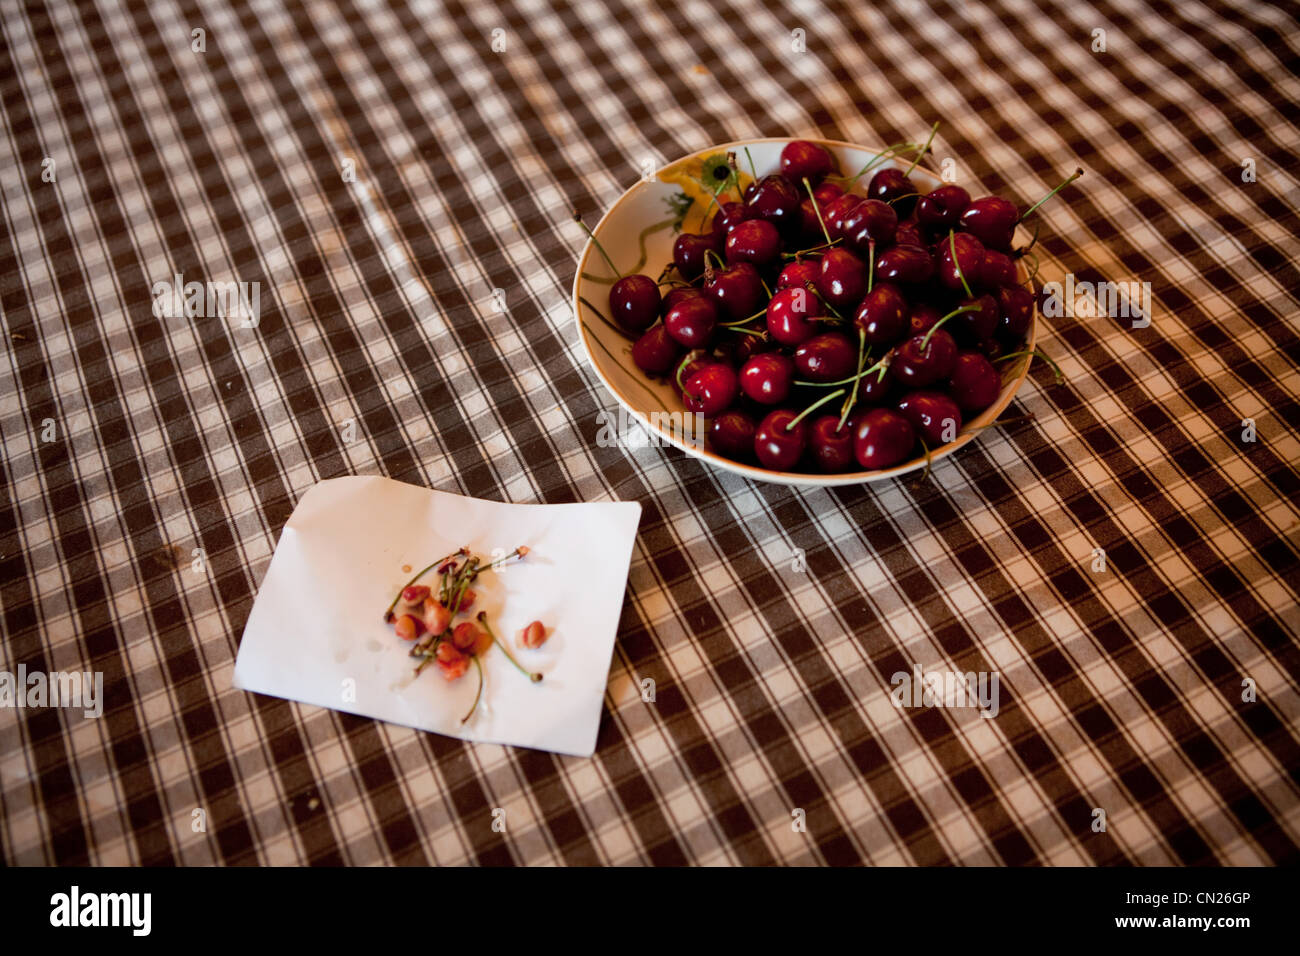 Bowl of cherries on checked tablecloth - Stock Image